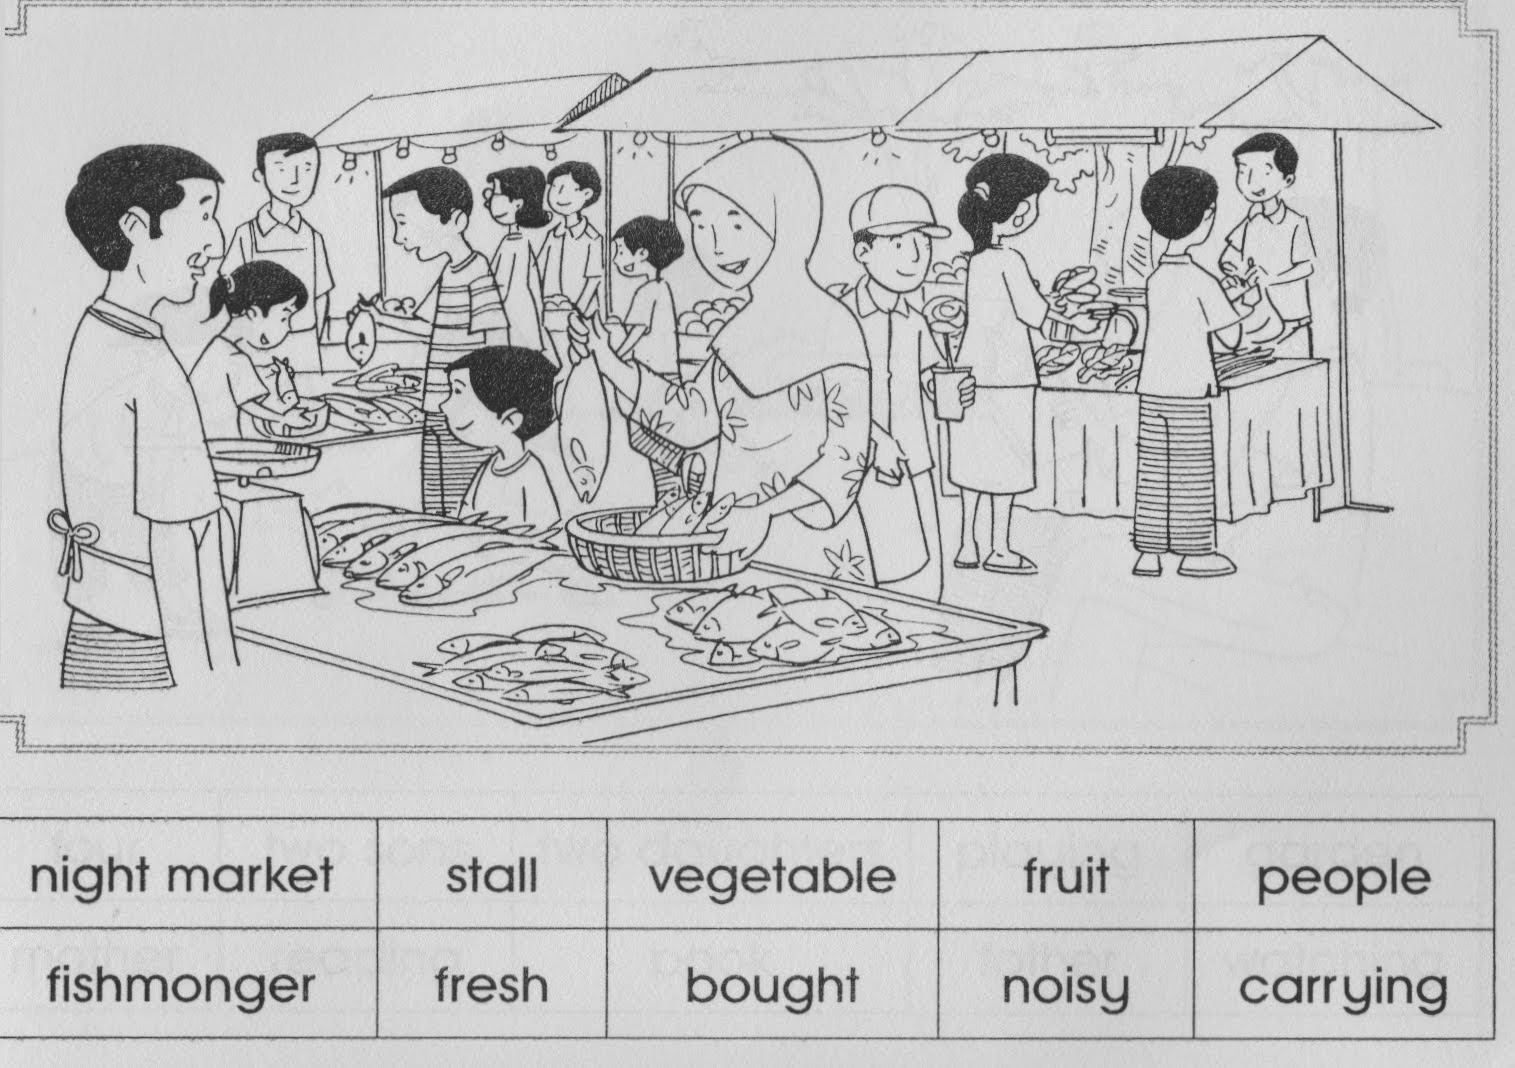 Night market essay upsr